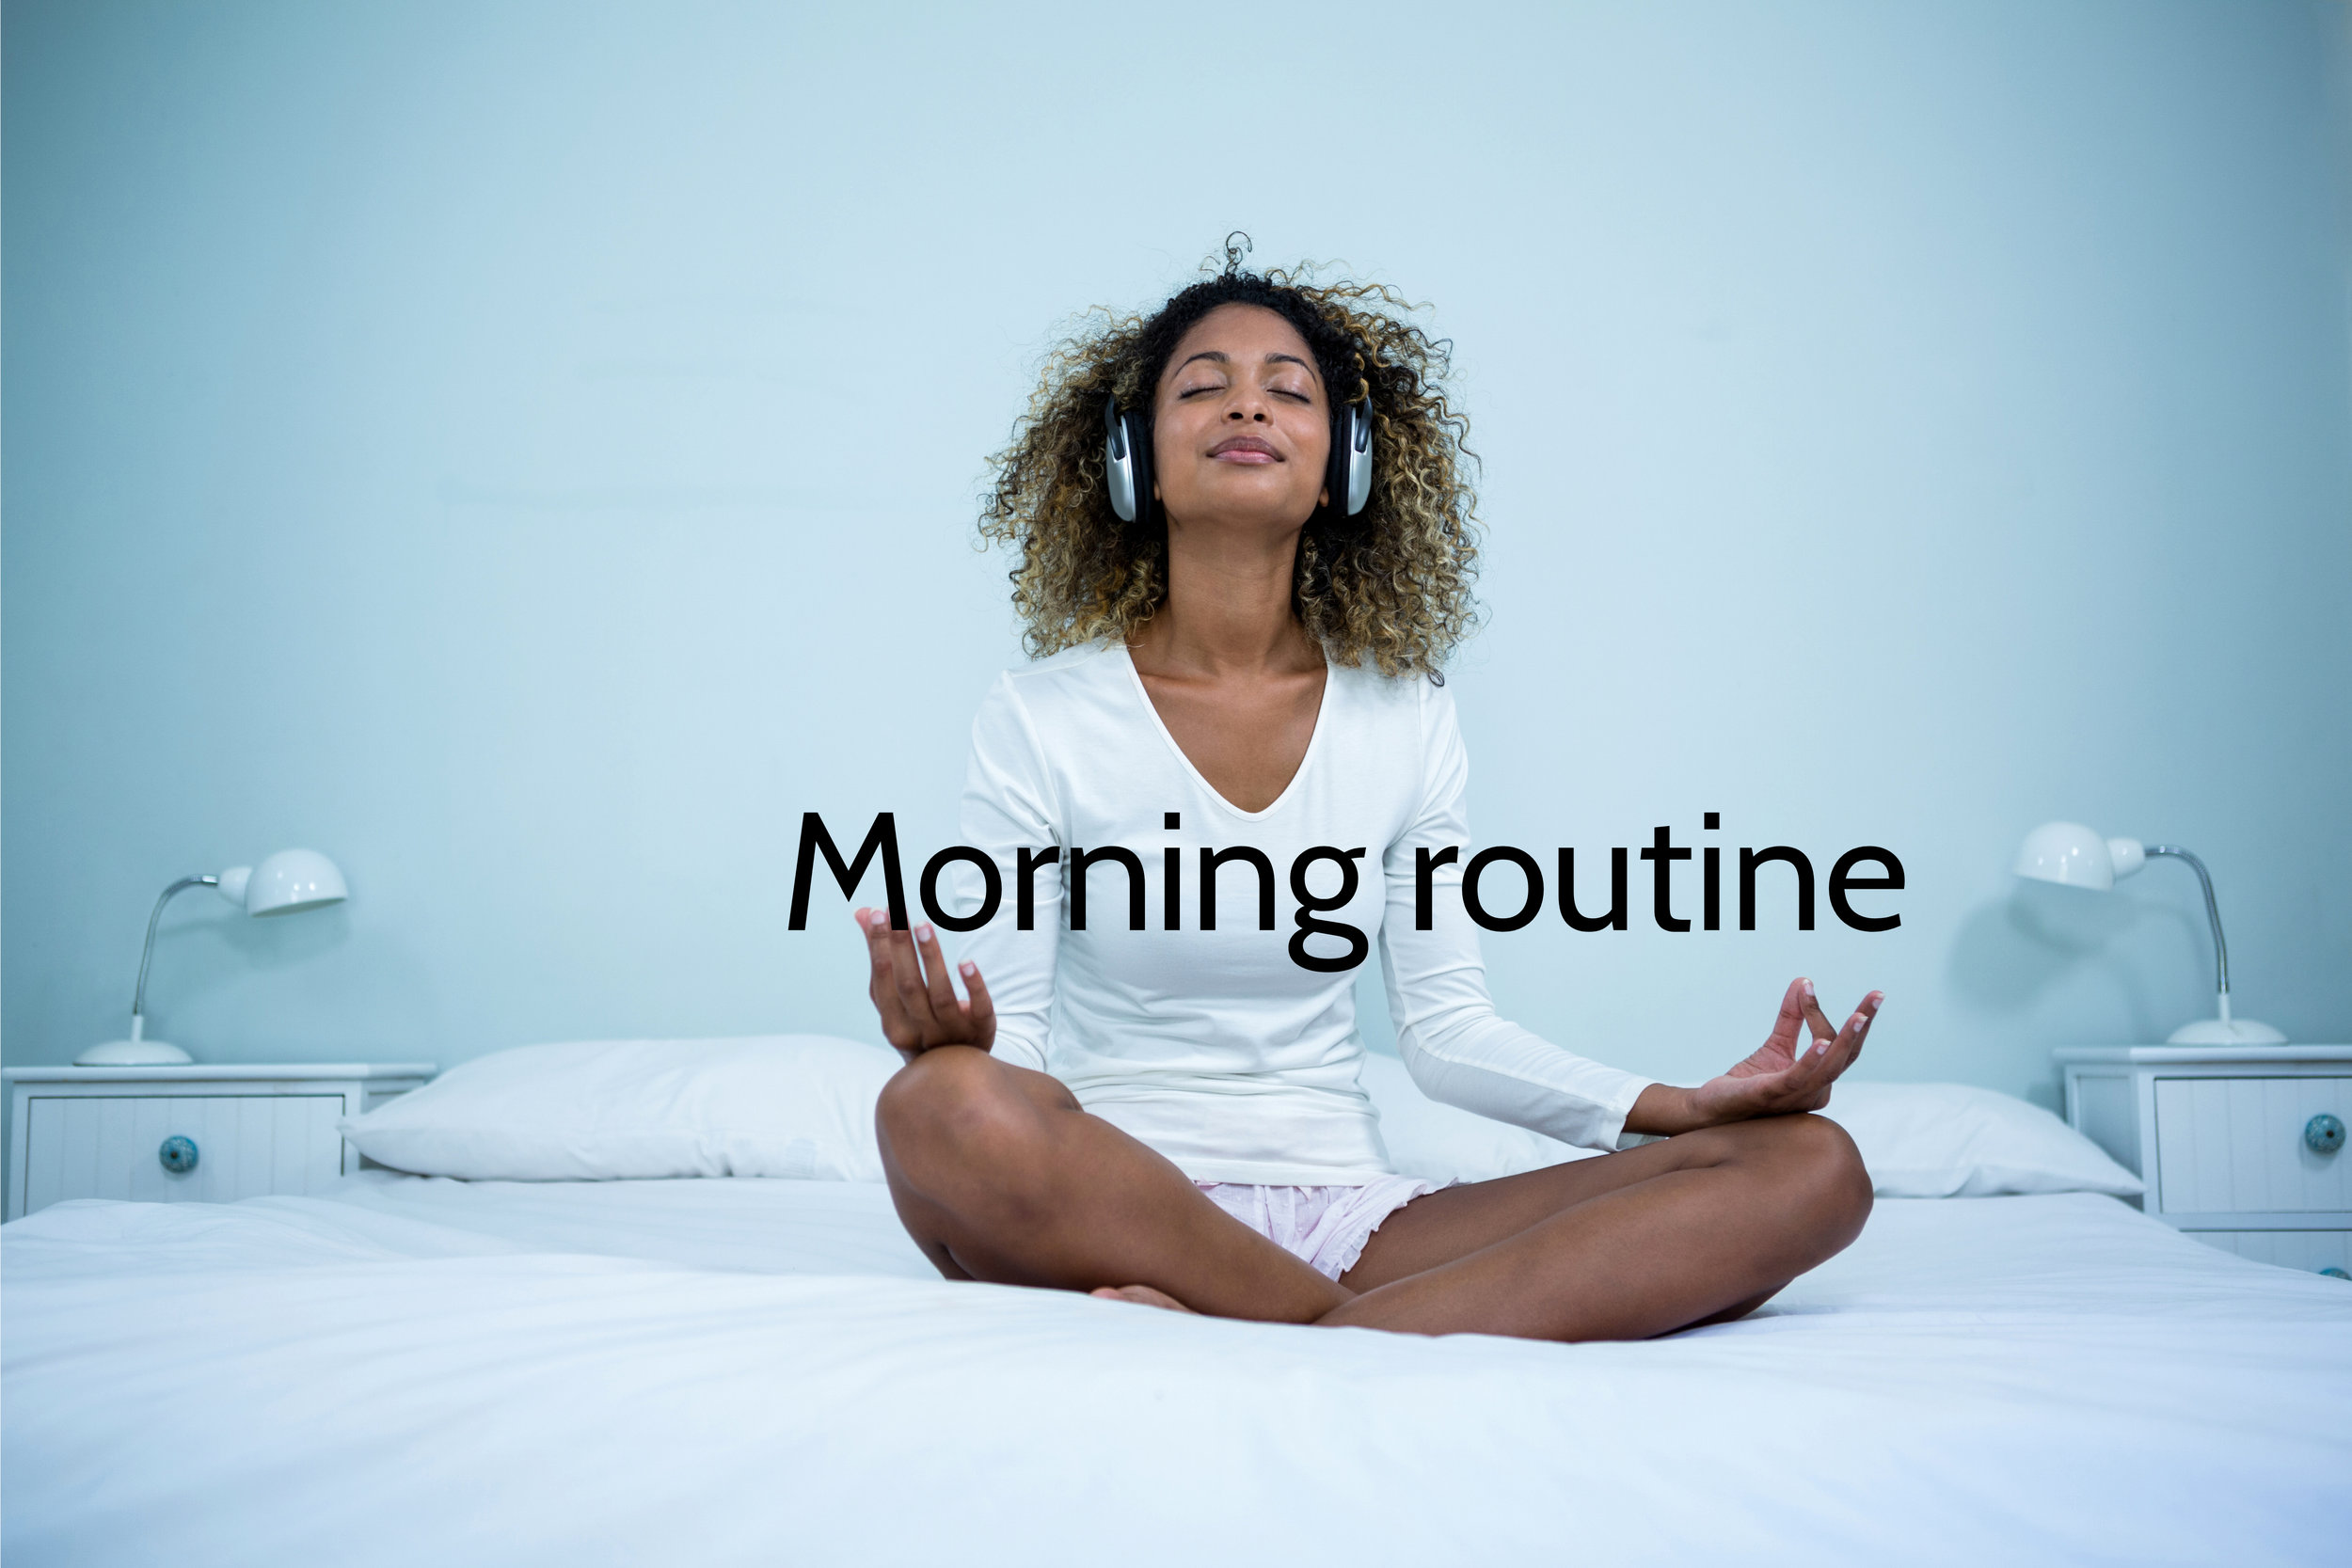 MorningRoutine.jpg